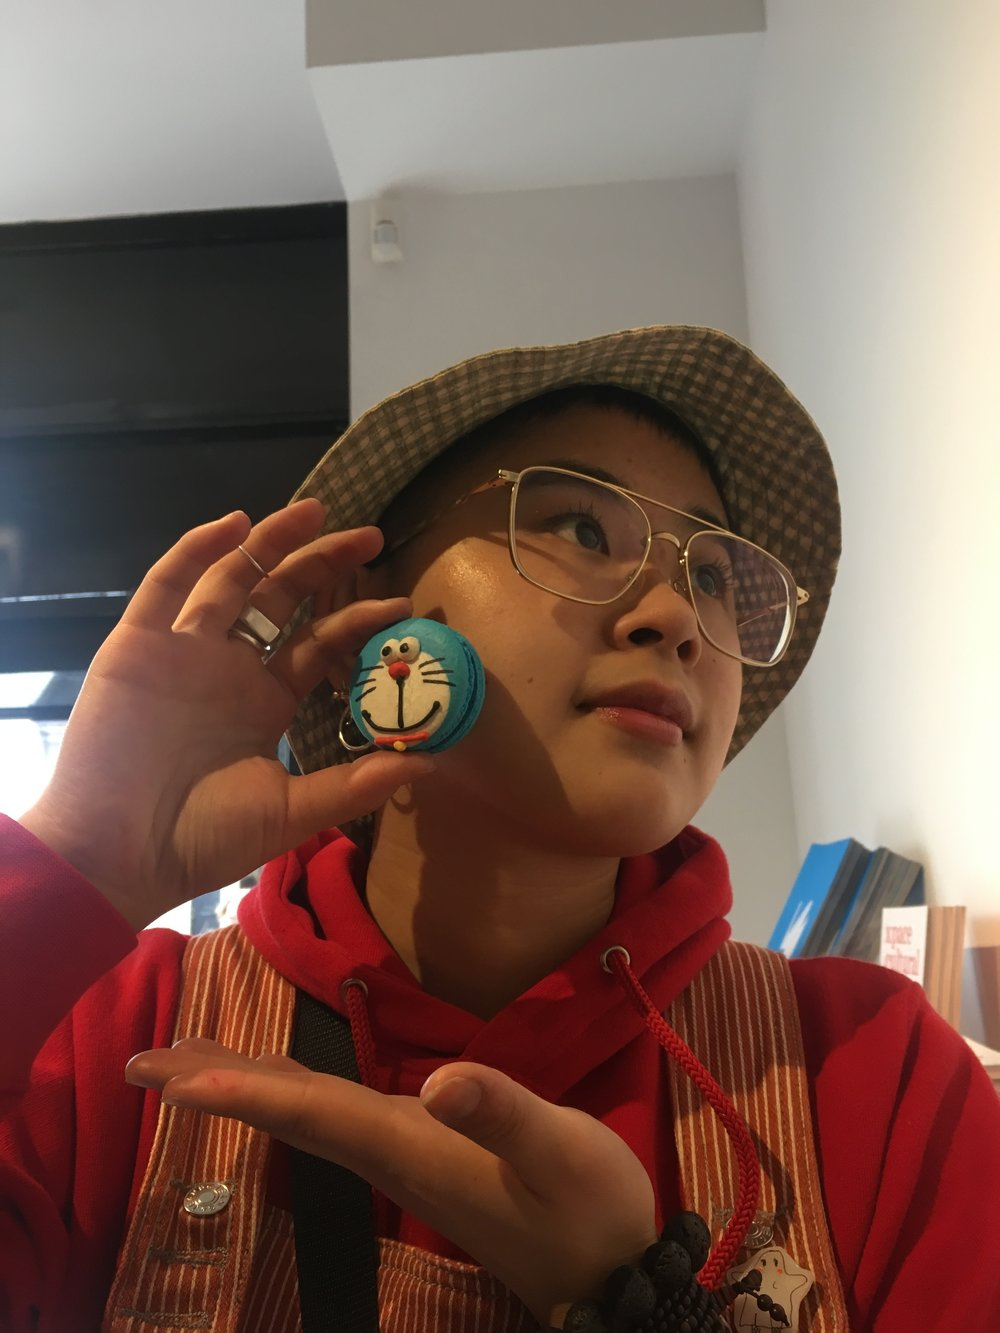 sabrina with doraemon blueberry macaron